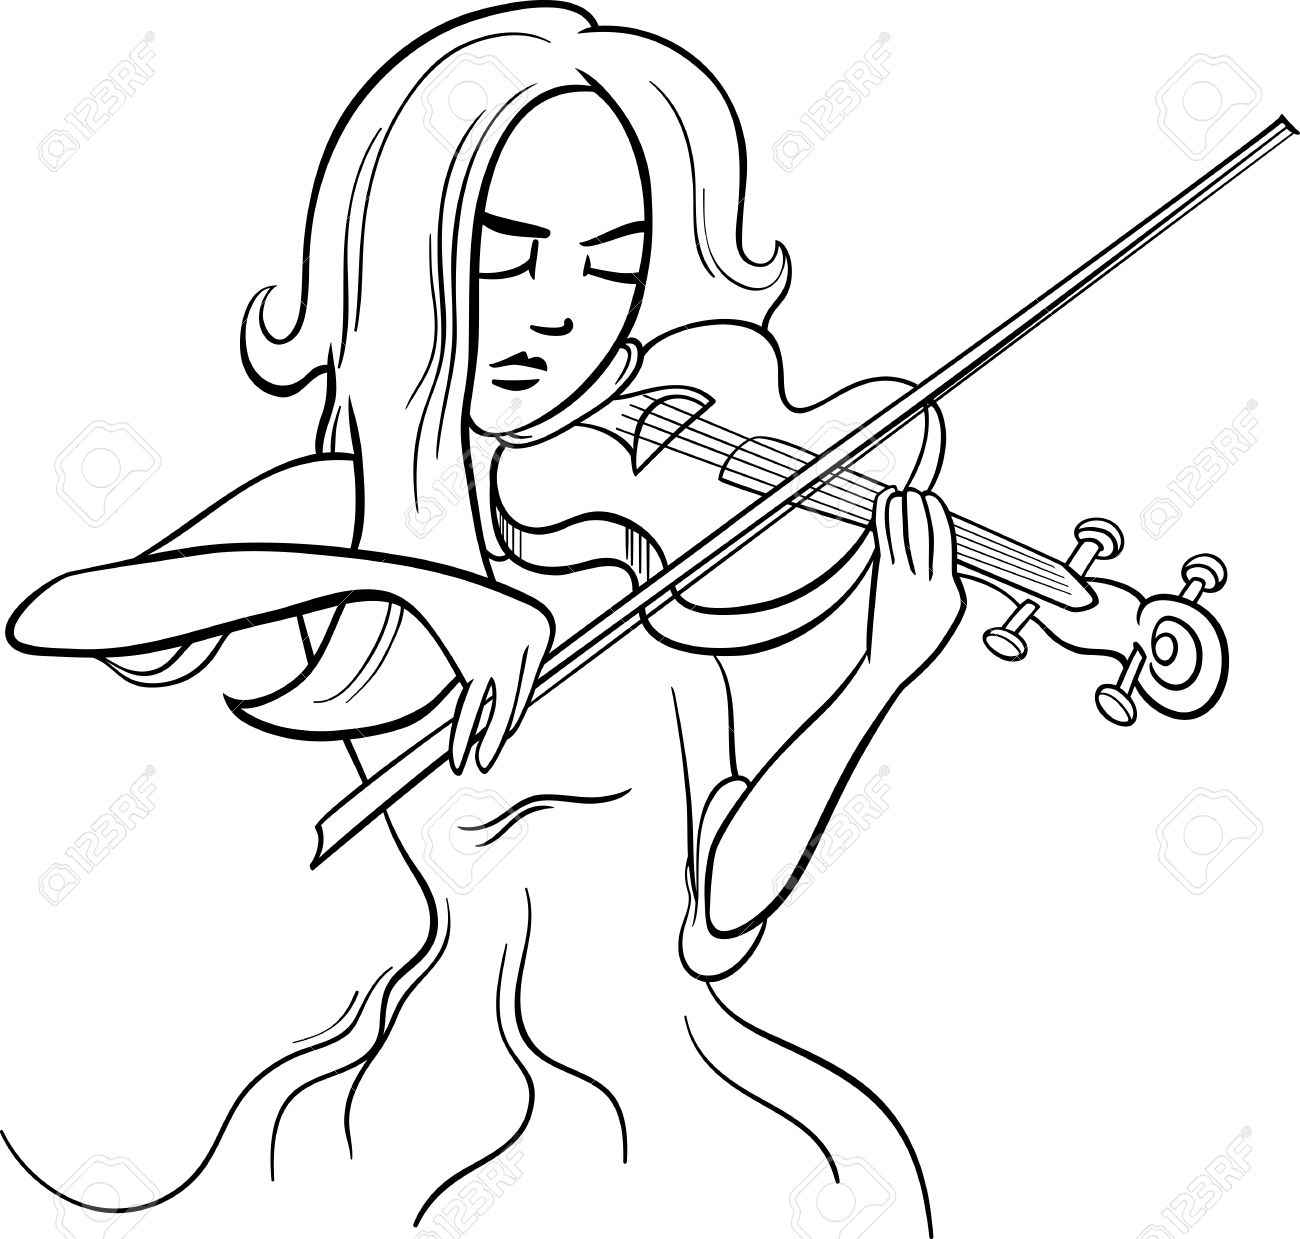 Black And White Cartoon Illustration Of Violinist Woman Or Beautiful ... for violin cartoon black and white  181obs